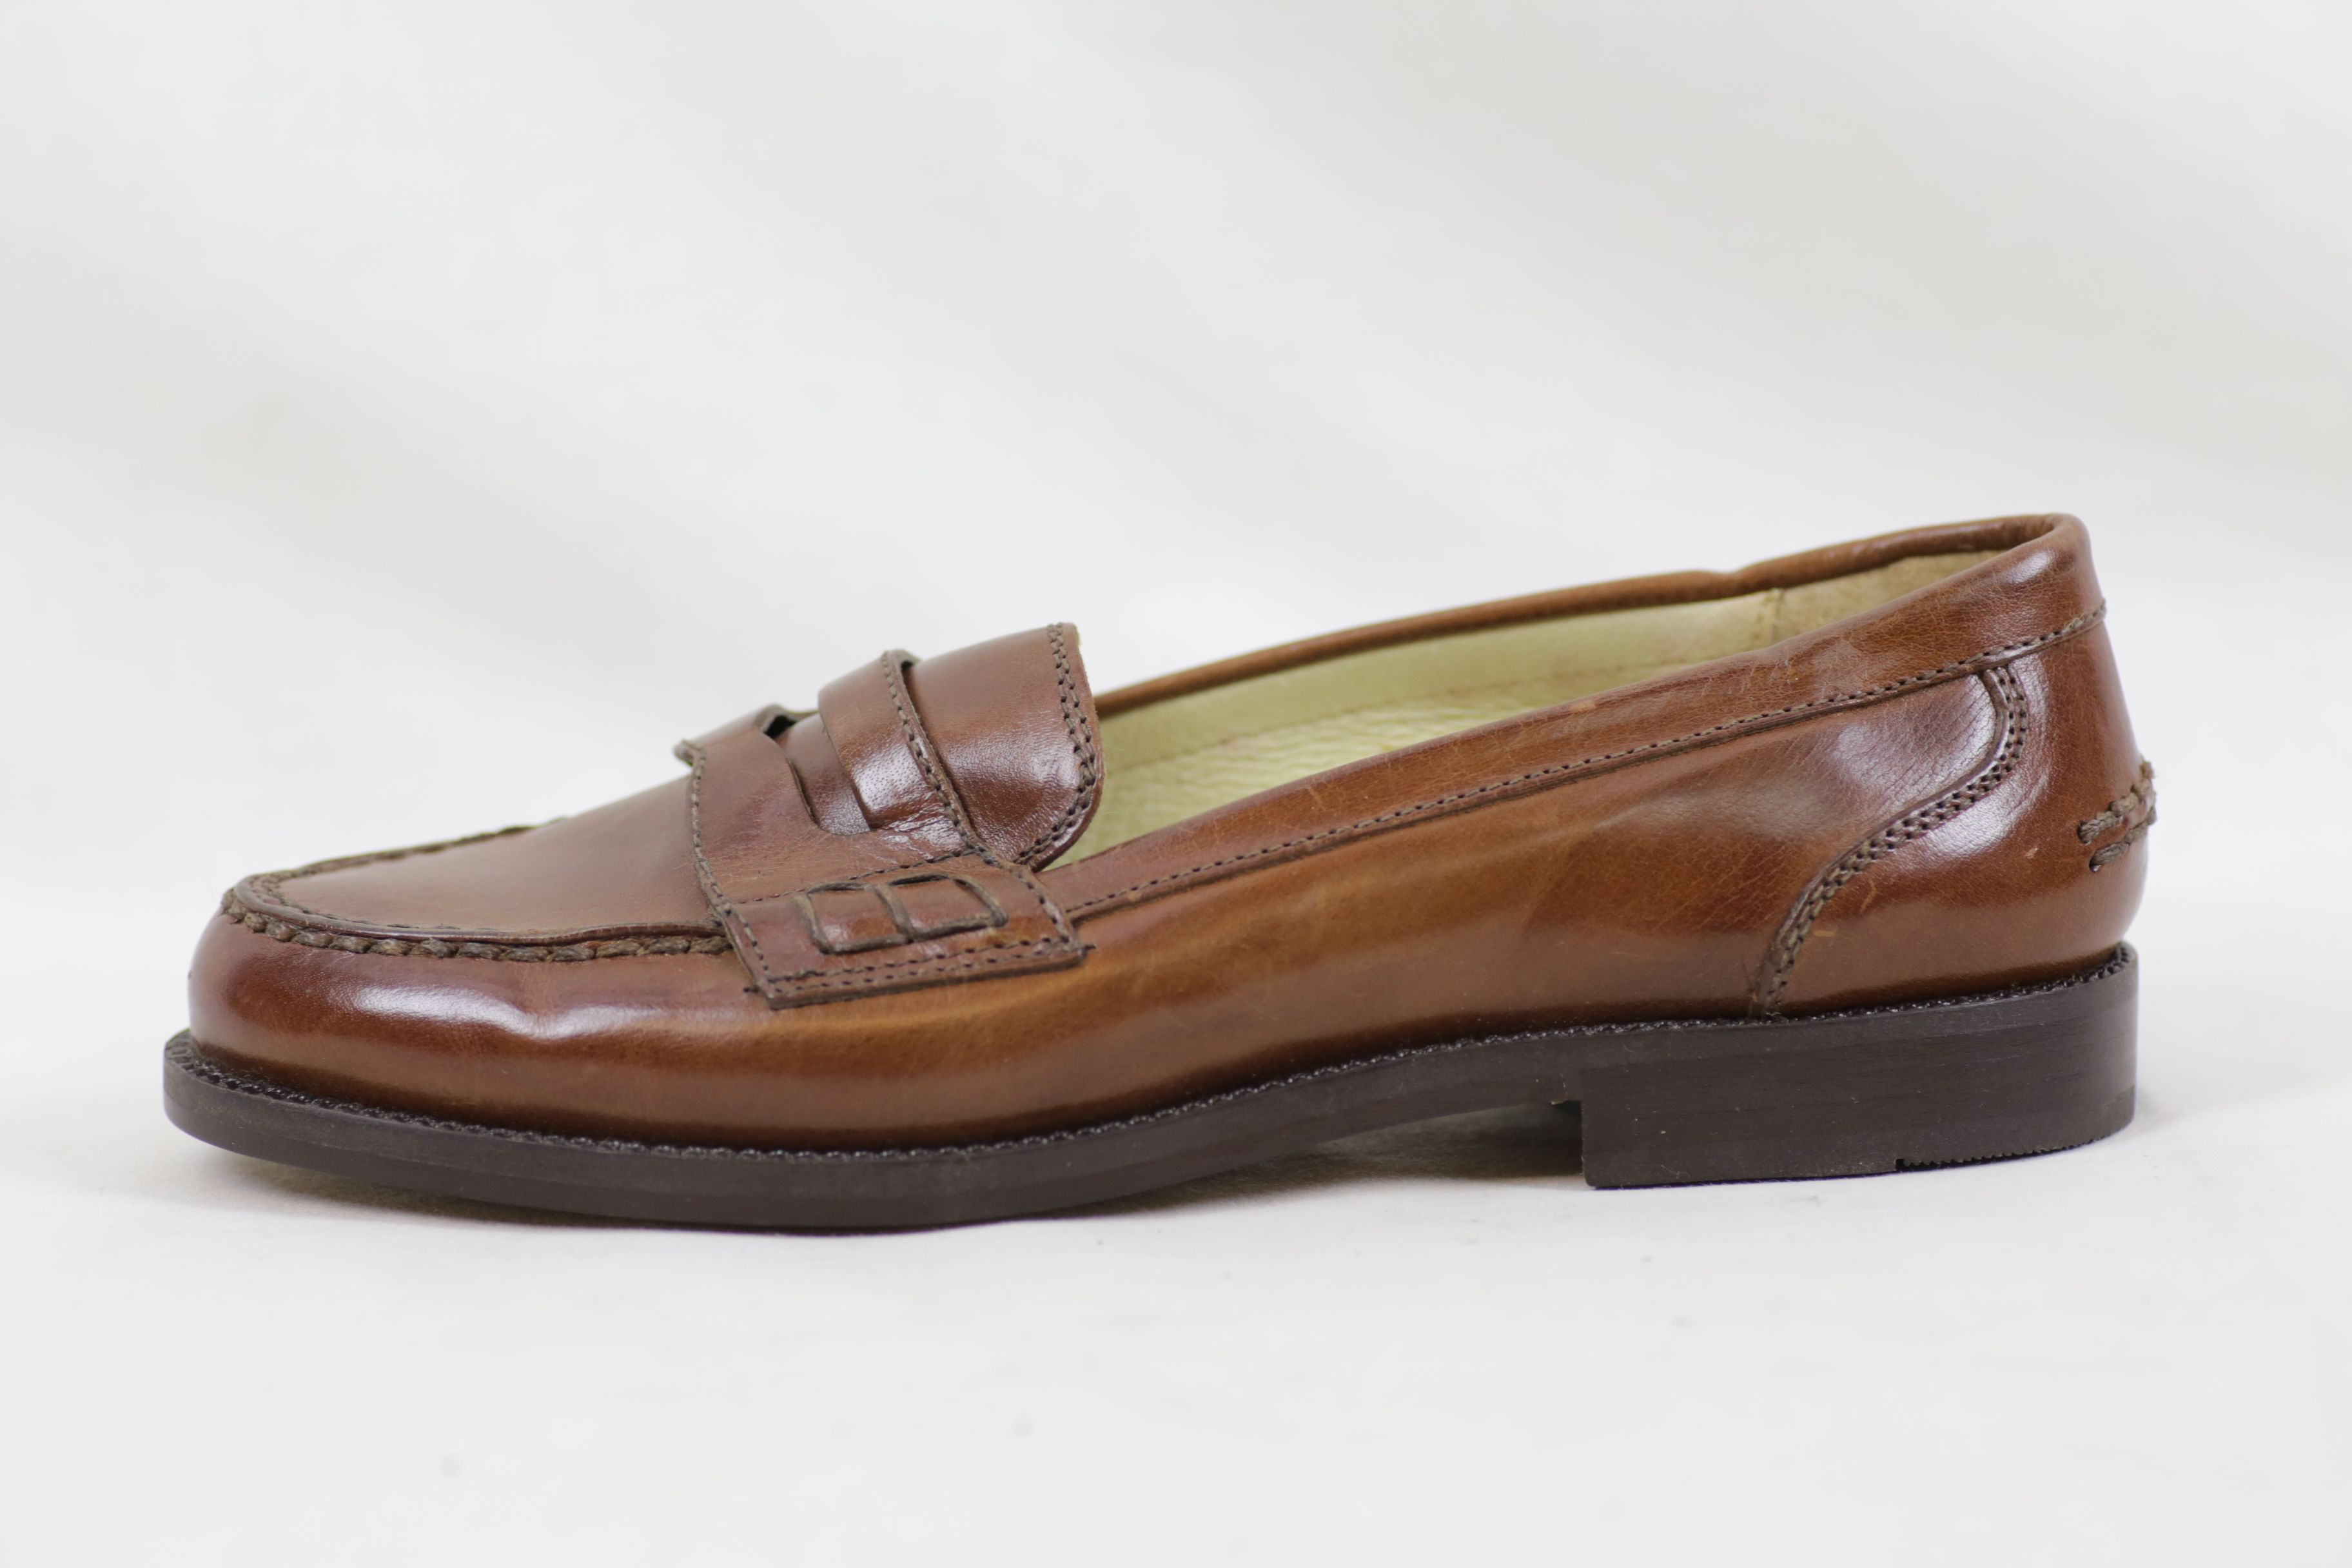 Bally Brim Classic Mid Brown Leather Shoes / Loafers - Size EU 36.5 UK 3.5 Thumbnail 3